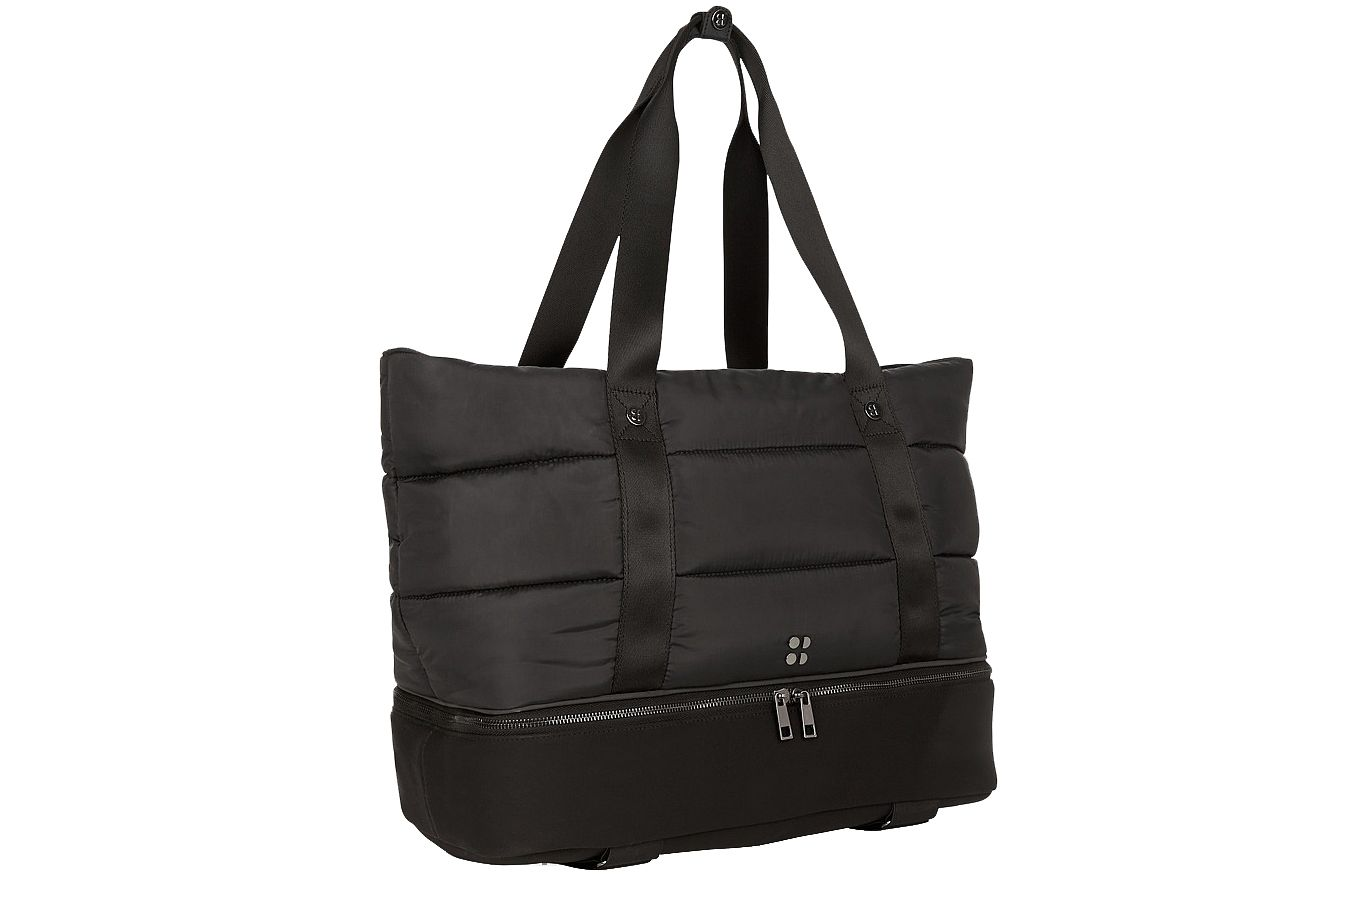 f882b2e308 13 Weekend Travel Bags for Men and Women